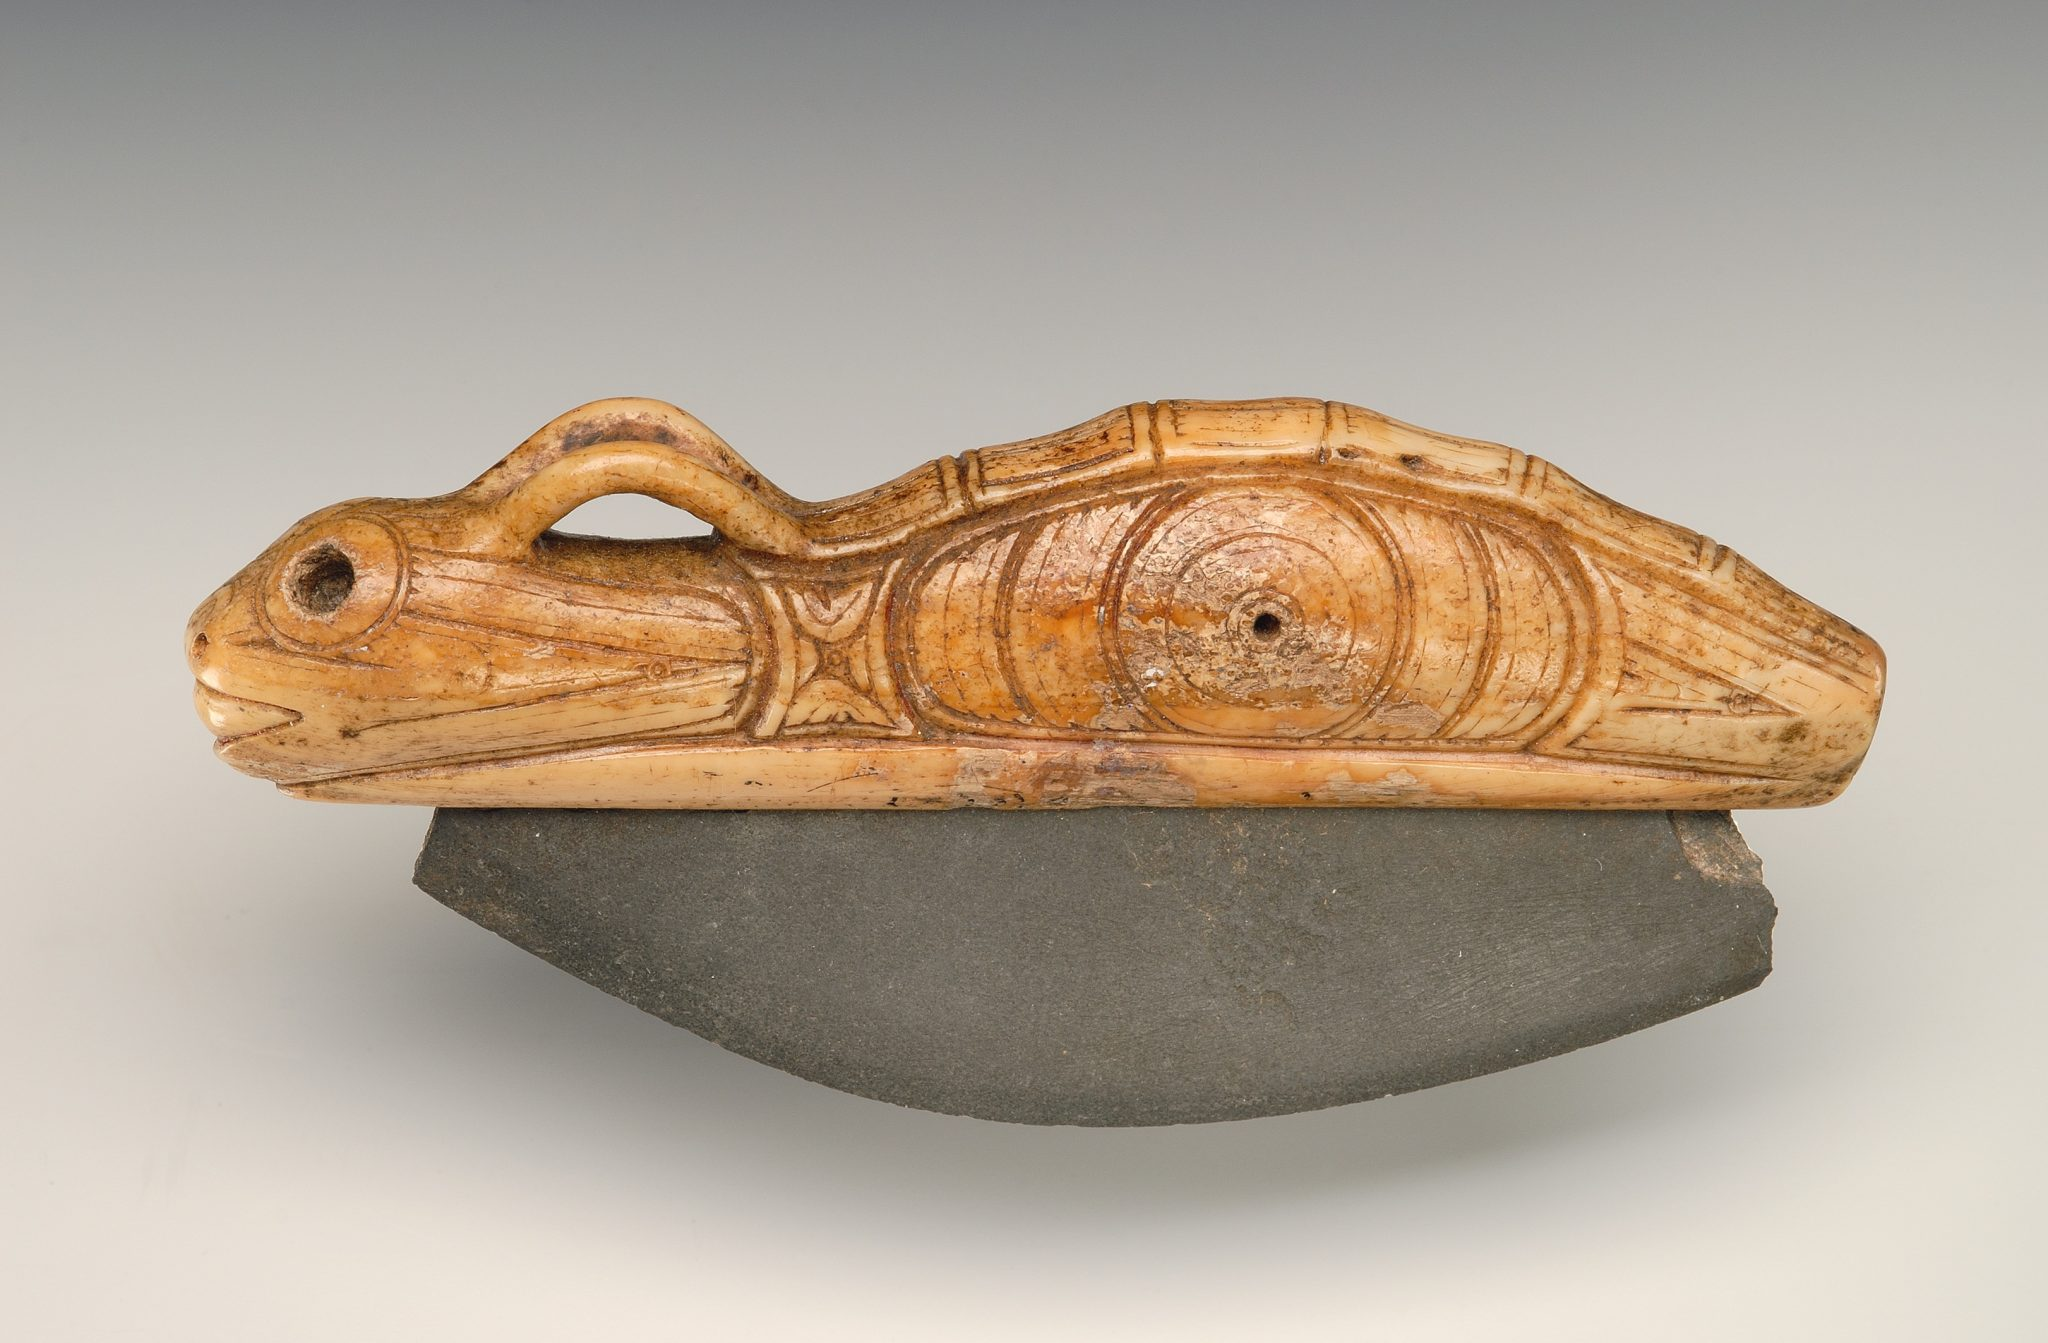 Ulu knife with zoomorphic handle from the ancient Eskimo burial site Ekven (OBS II-III). Material: stone, walrus tusk. State Museum of Oriental Art, Moscow (photo Ye. Zheltov).